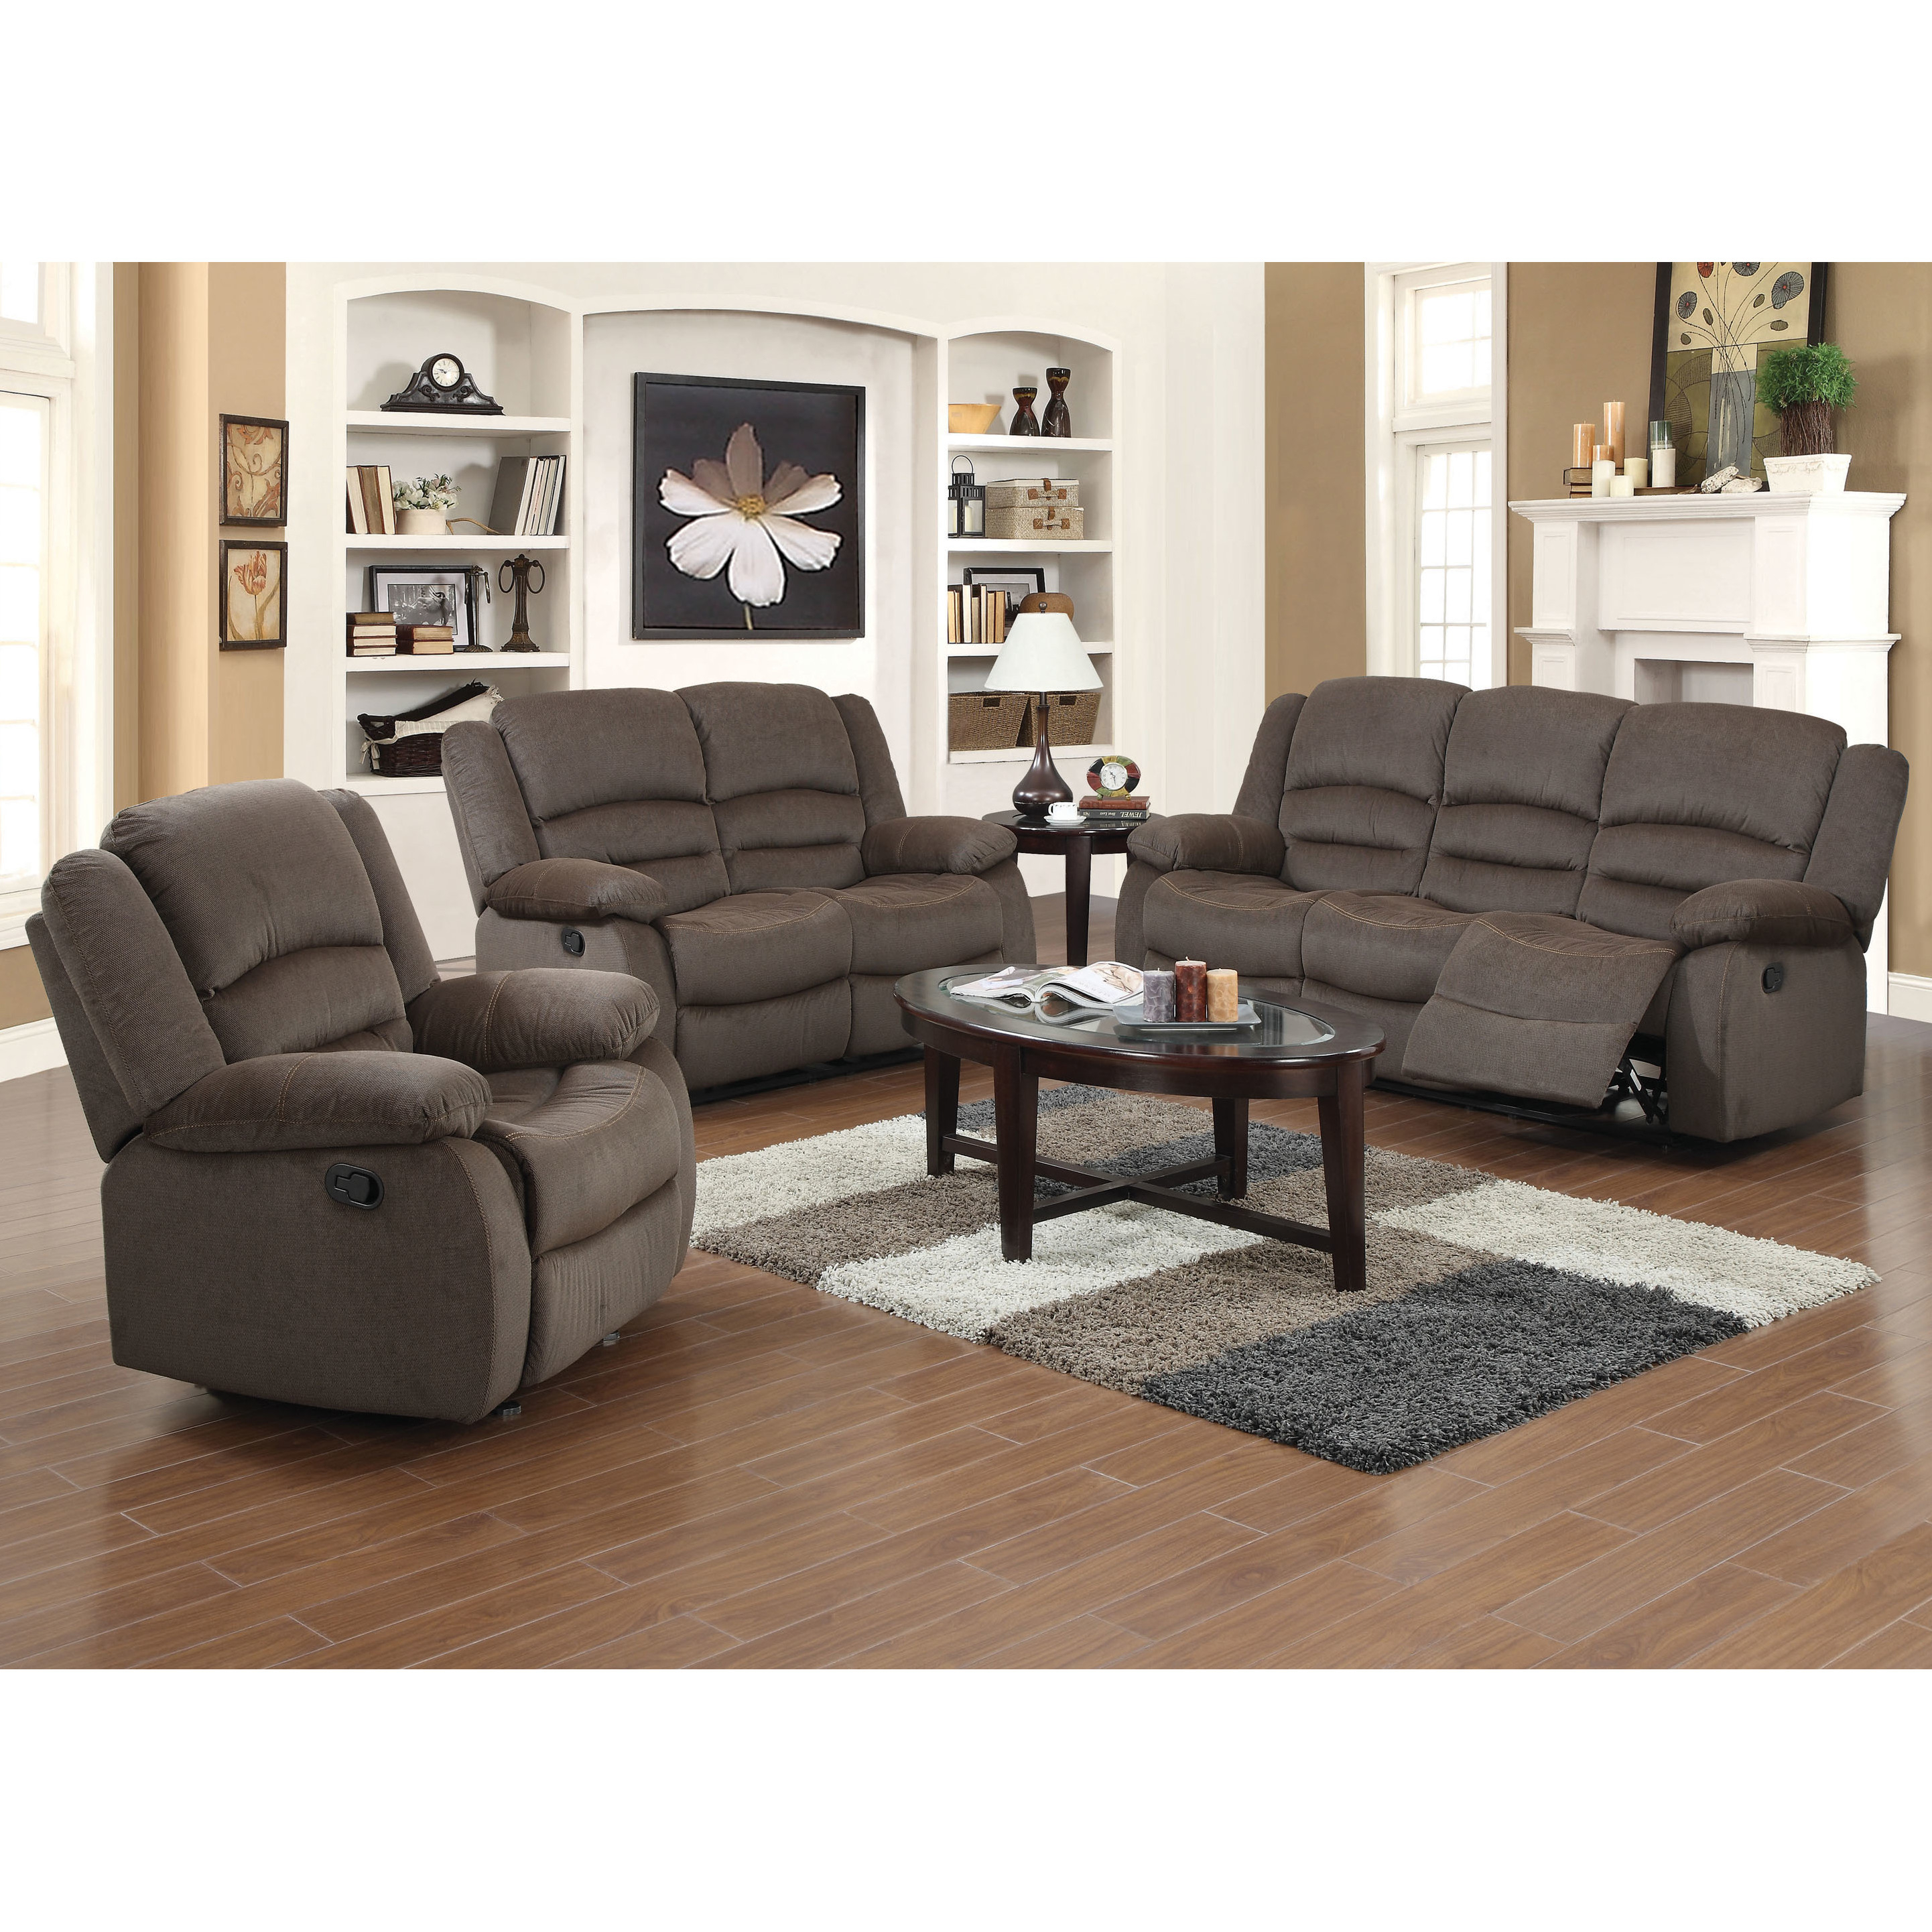 Sofa Classy Reclining Sofa Sets For Living Room Design in 14 Awesome Ideas How to Craft Cheap Living Room Sets For Sale